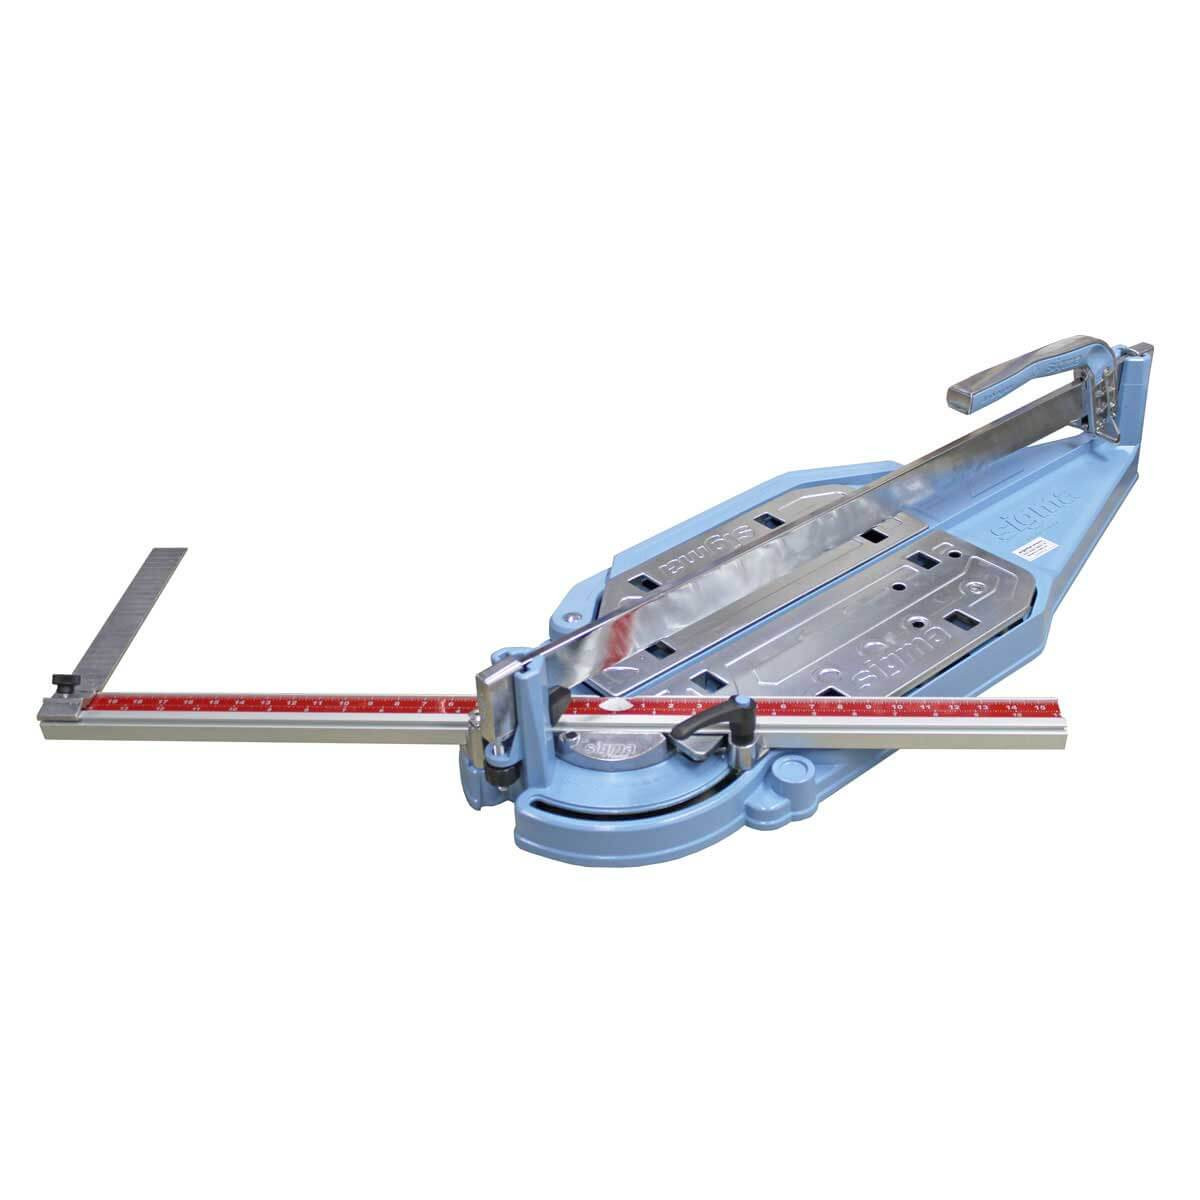 Sigma Pull Handle Tile Cutter 3B4